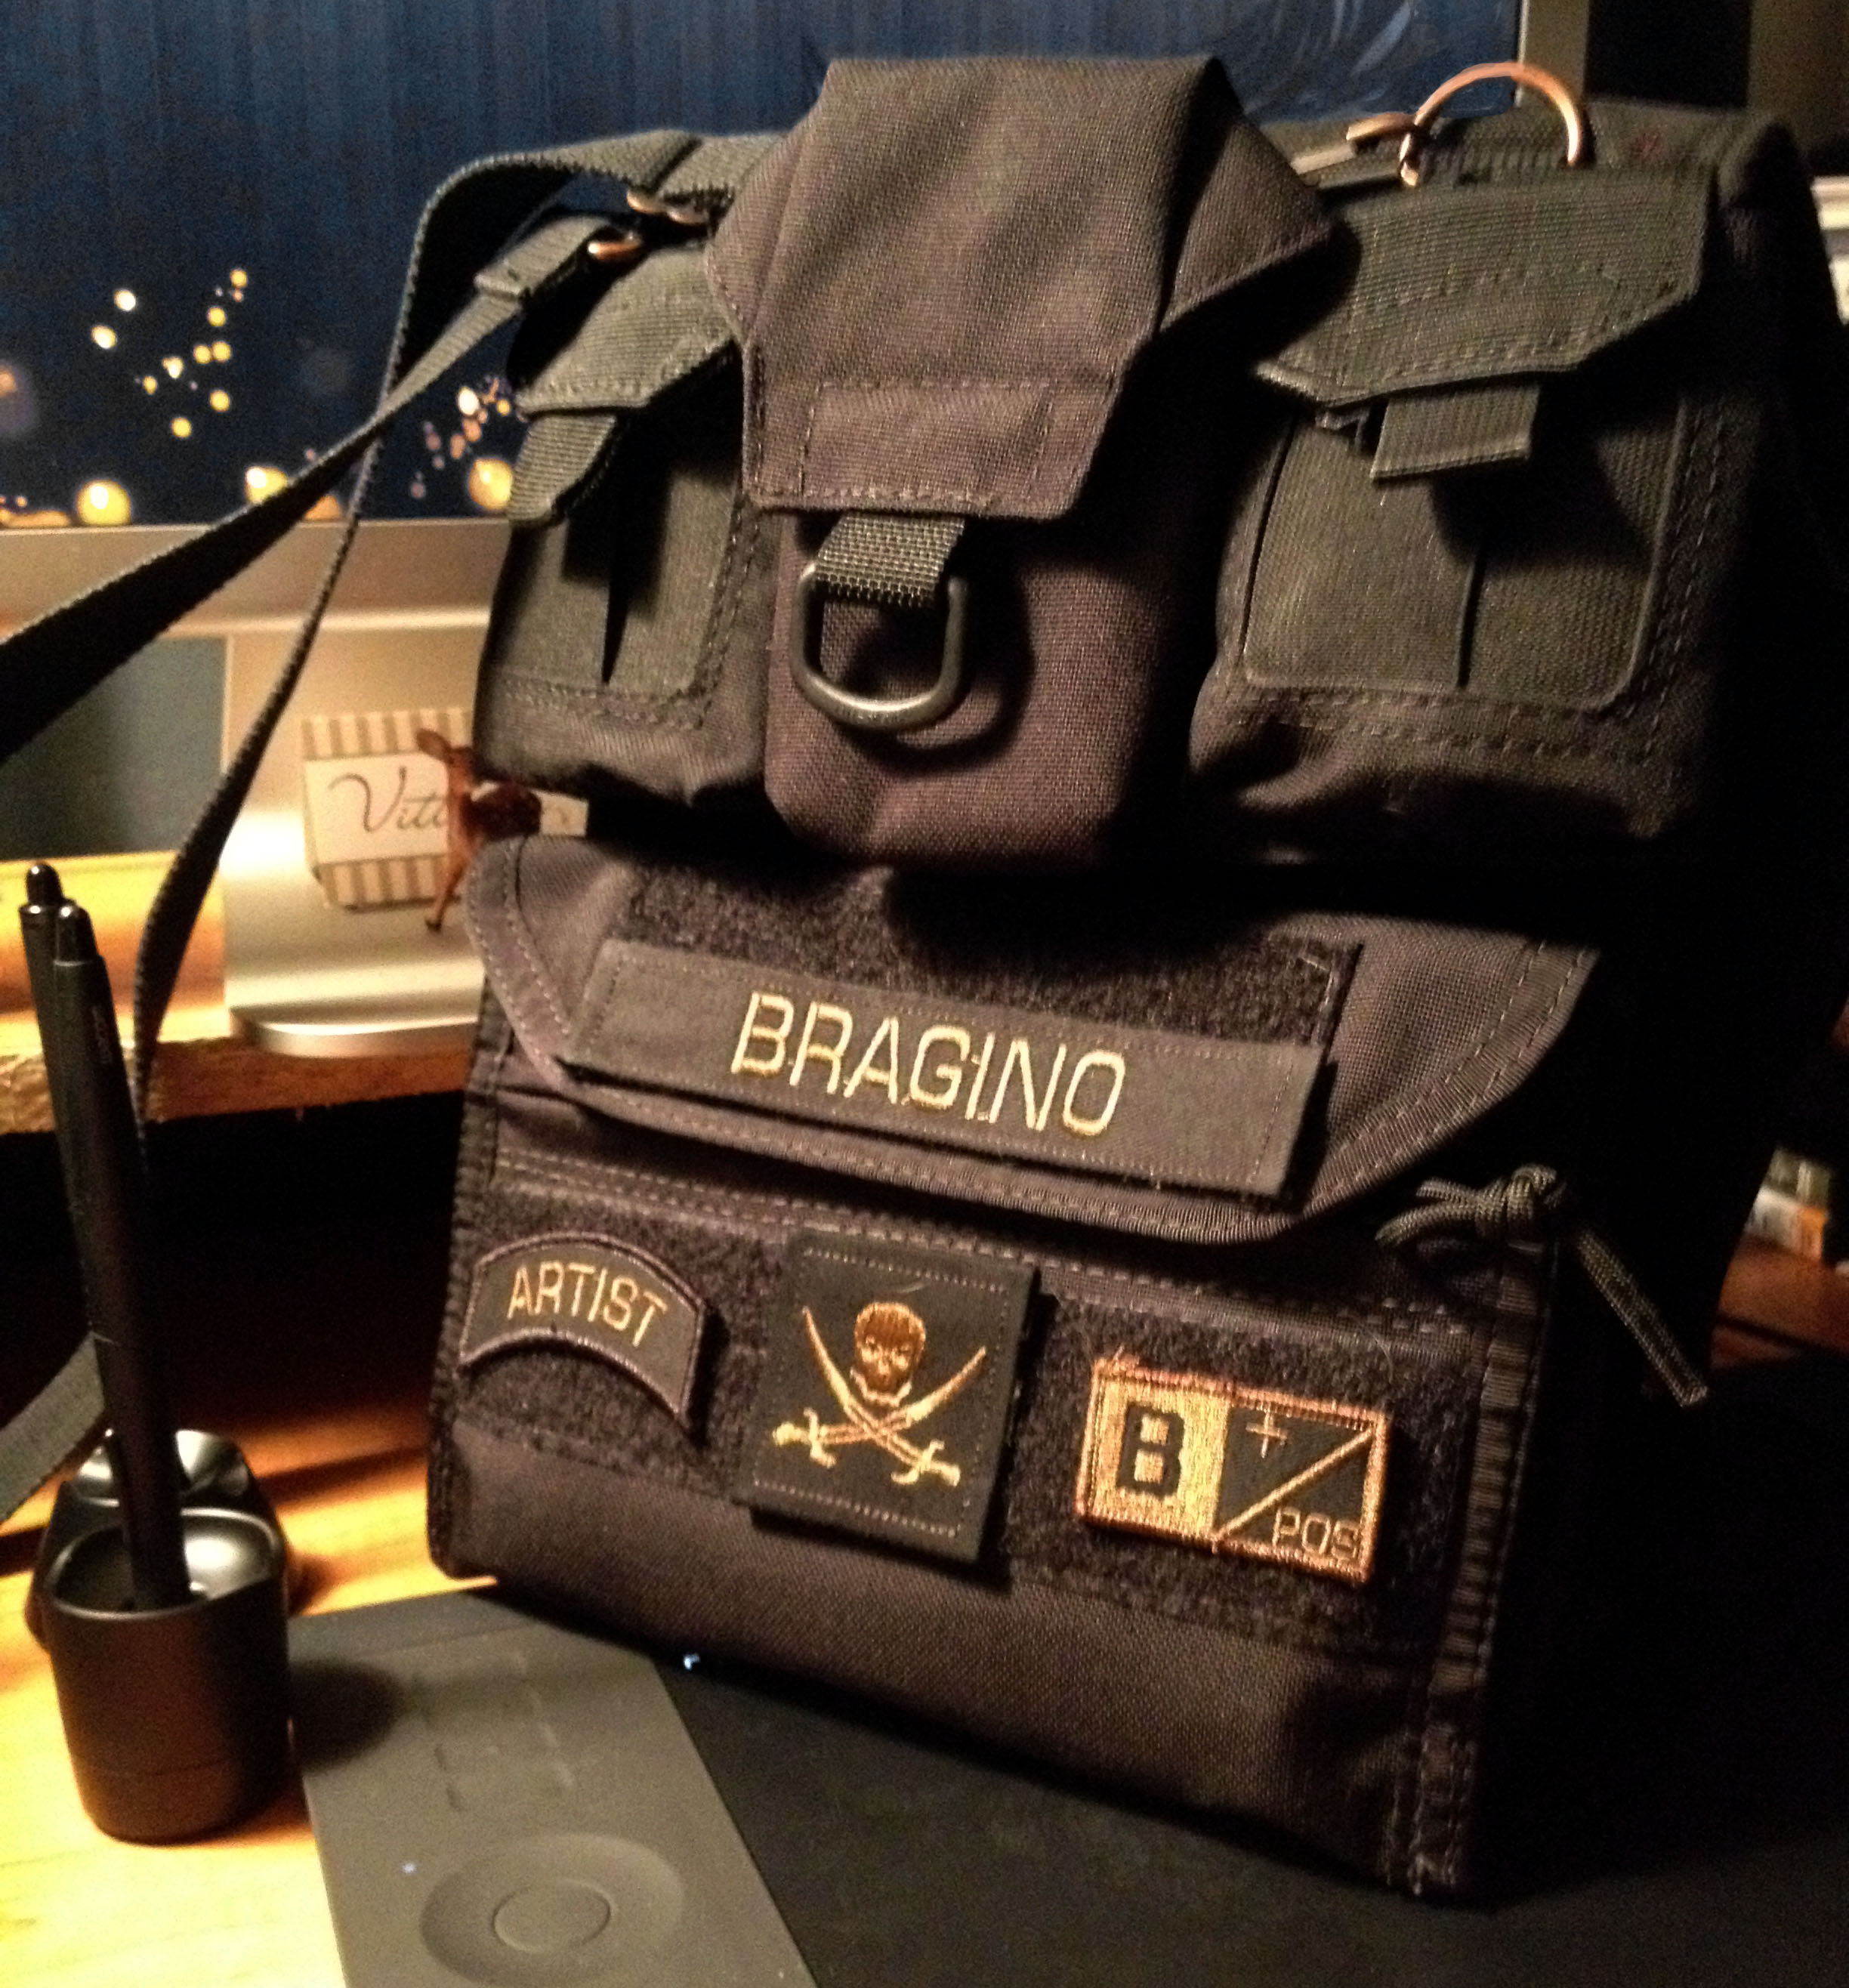 bragino-artistbag.jpg